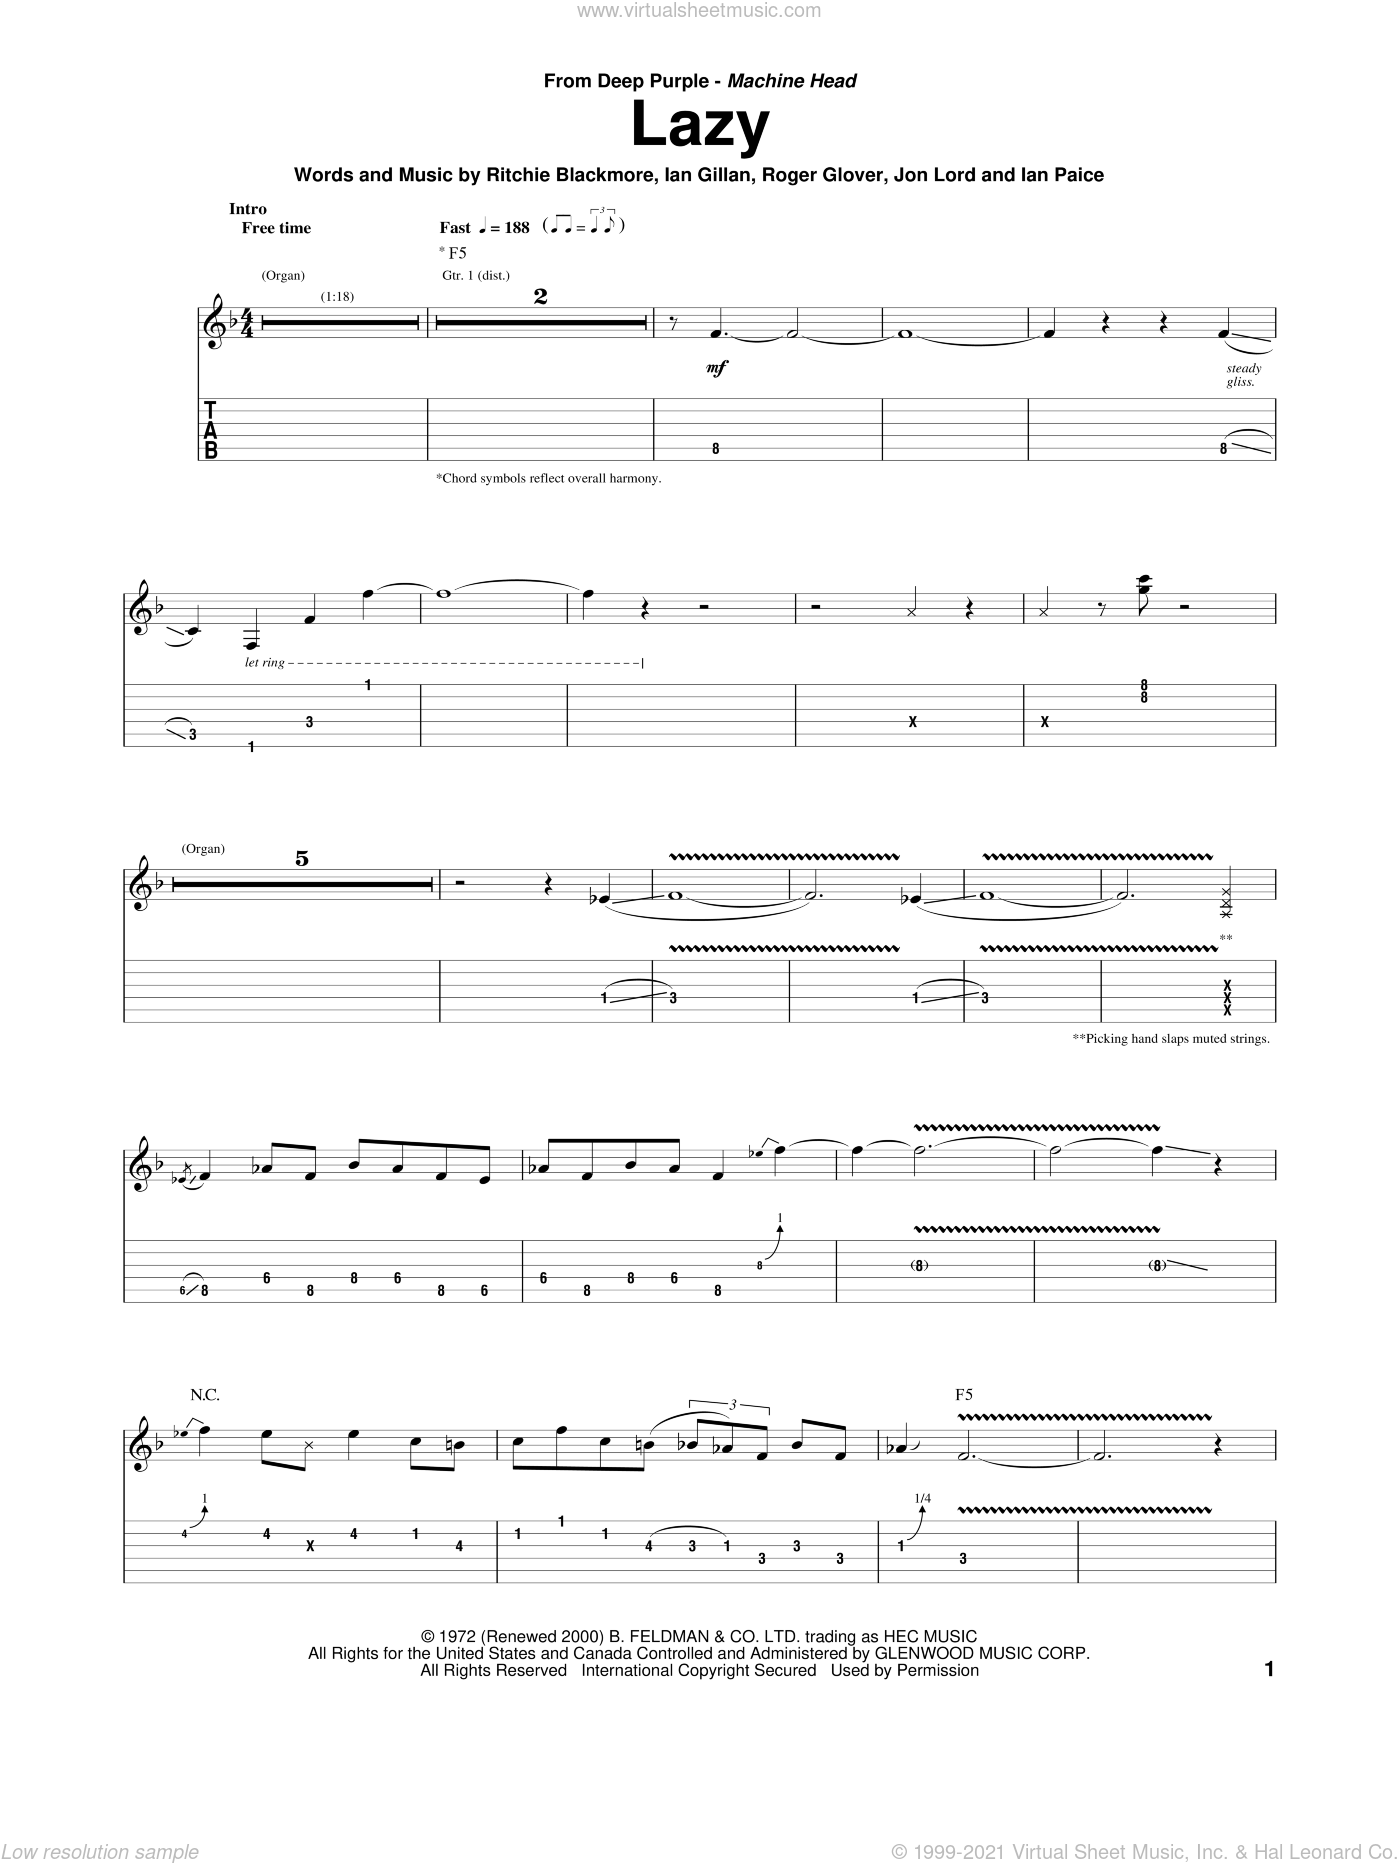 Lazy sheet music for guitar (tablature) by Deep Purple, Ian Gillan, Ian Paice, Jon Lord, Ritchie Blackmore and Roger Glover, intermediate skill level